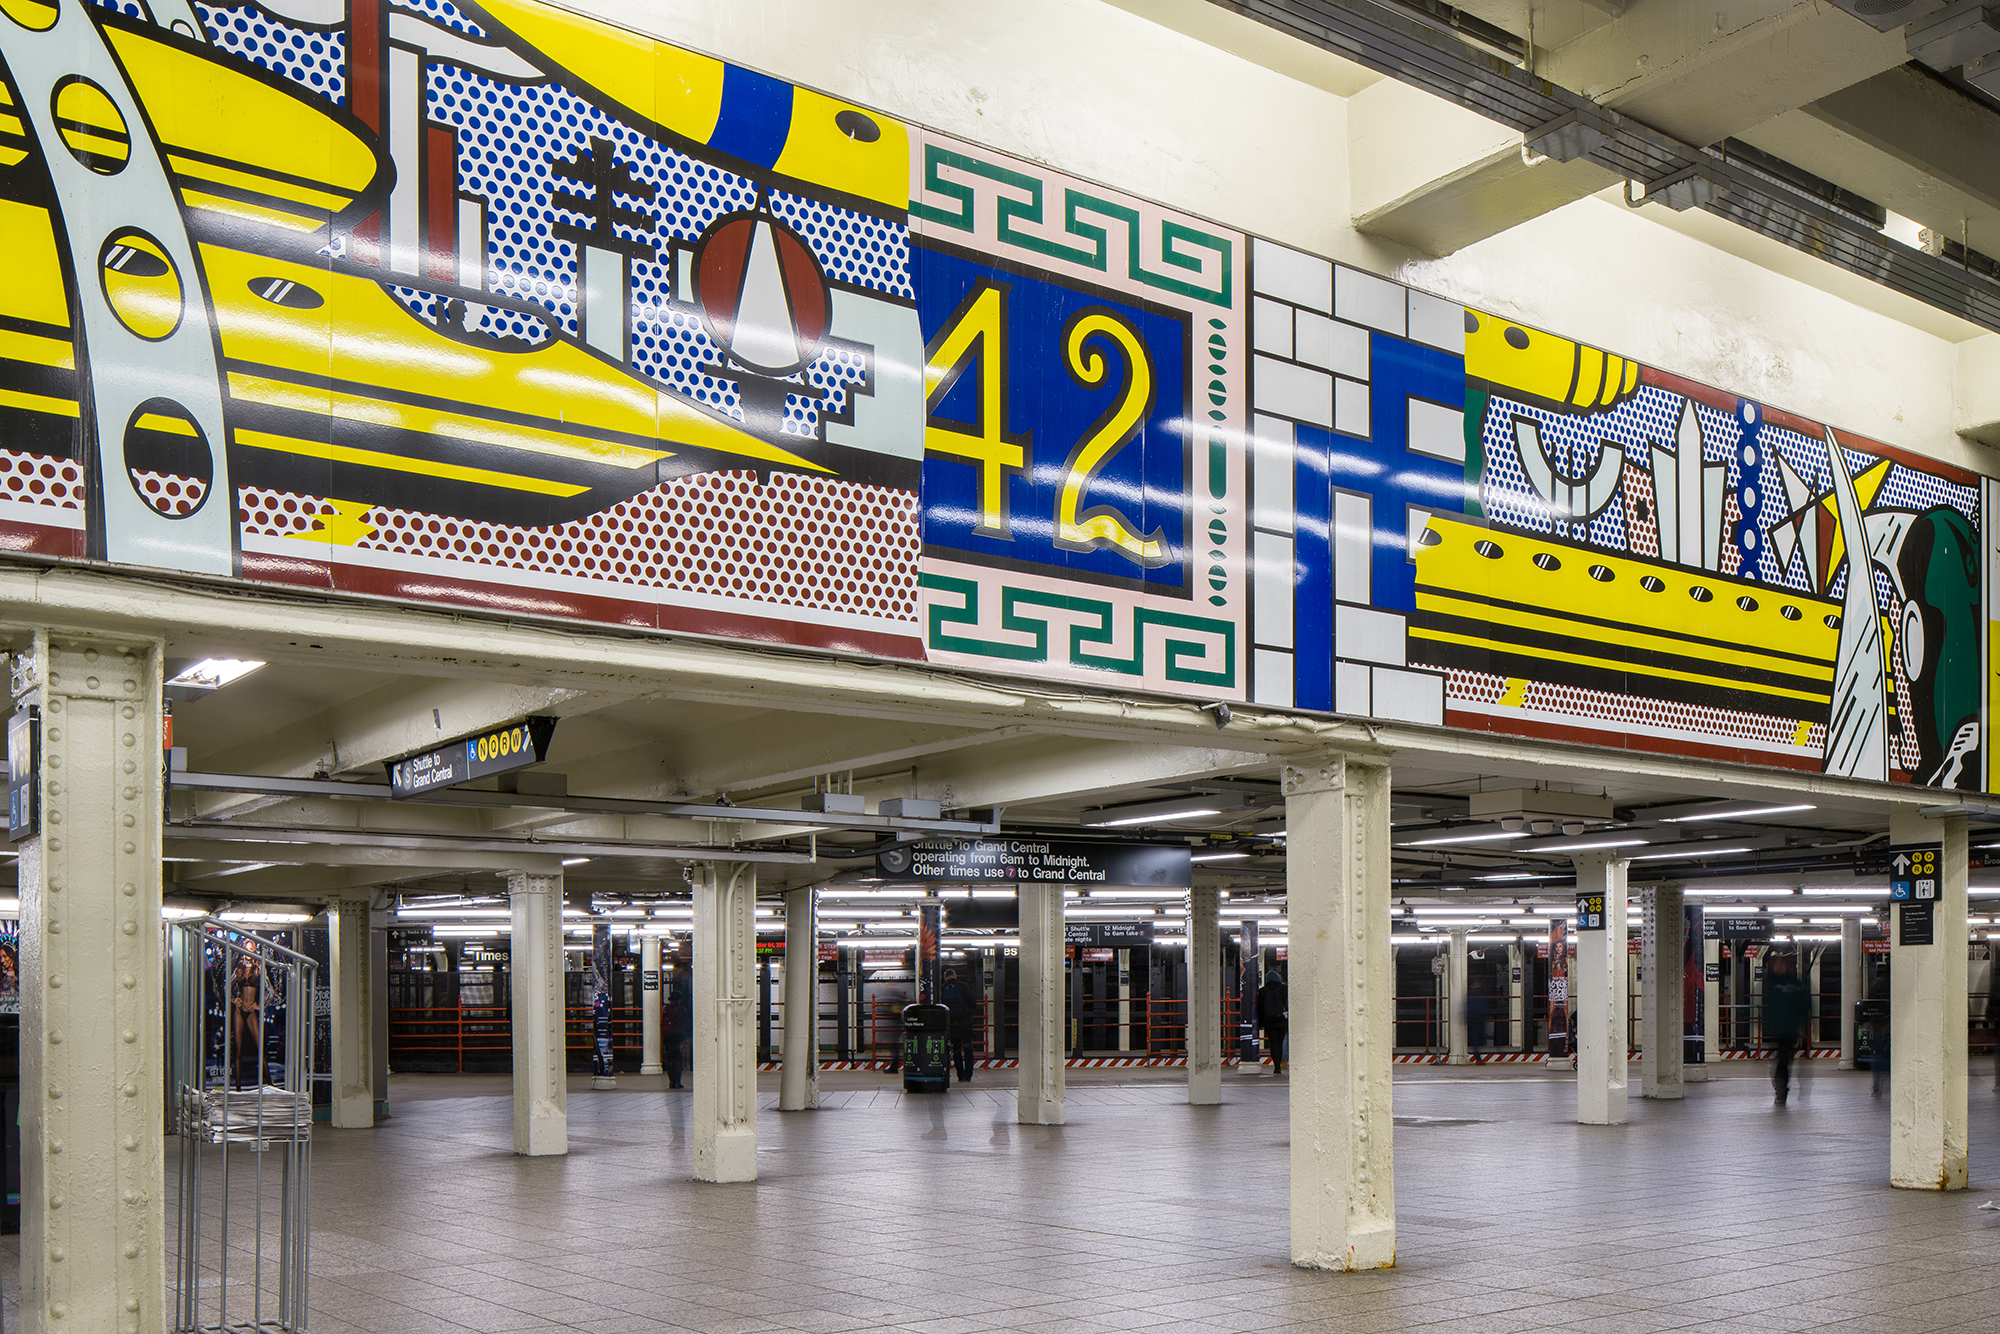 A colorful mural installed in a subway station.